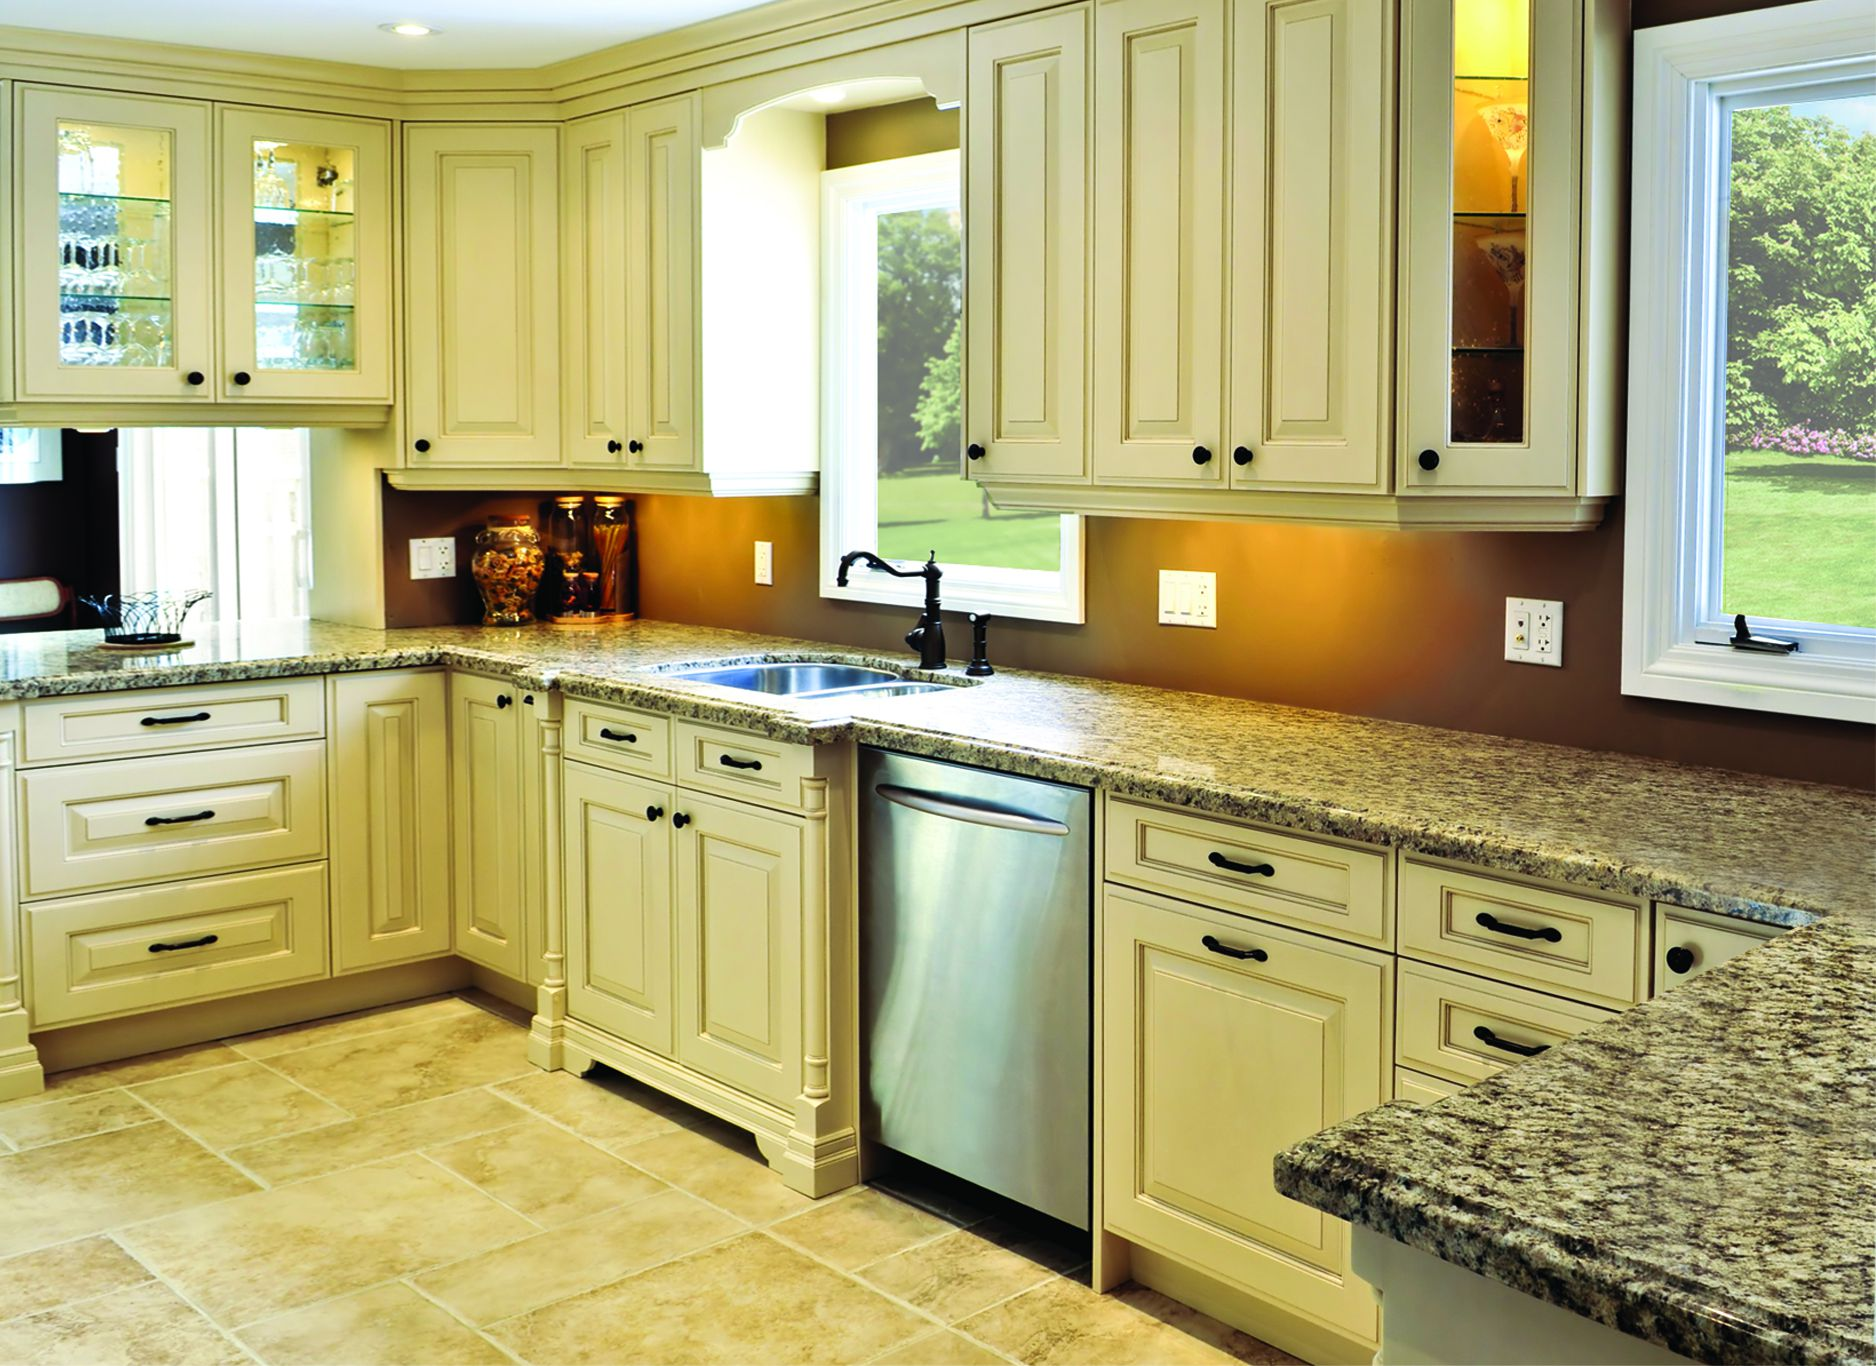 Some kitchen remodeling ideas to increase the value of for Home kitchen renovation ideas